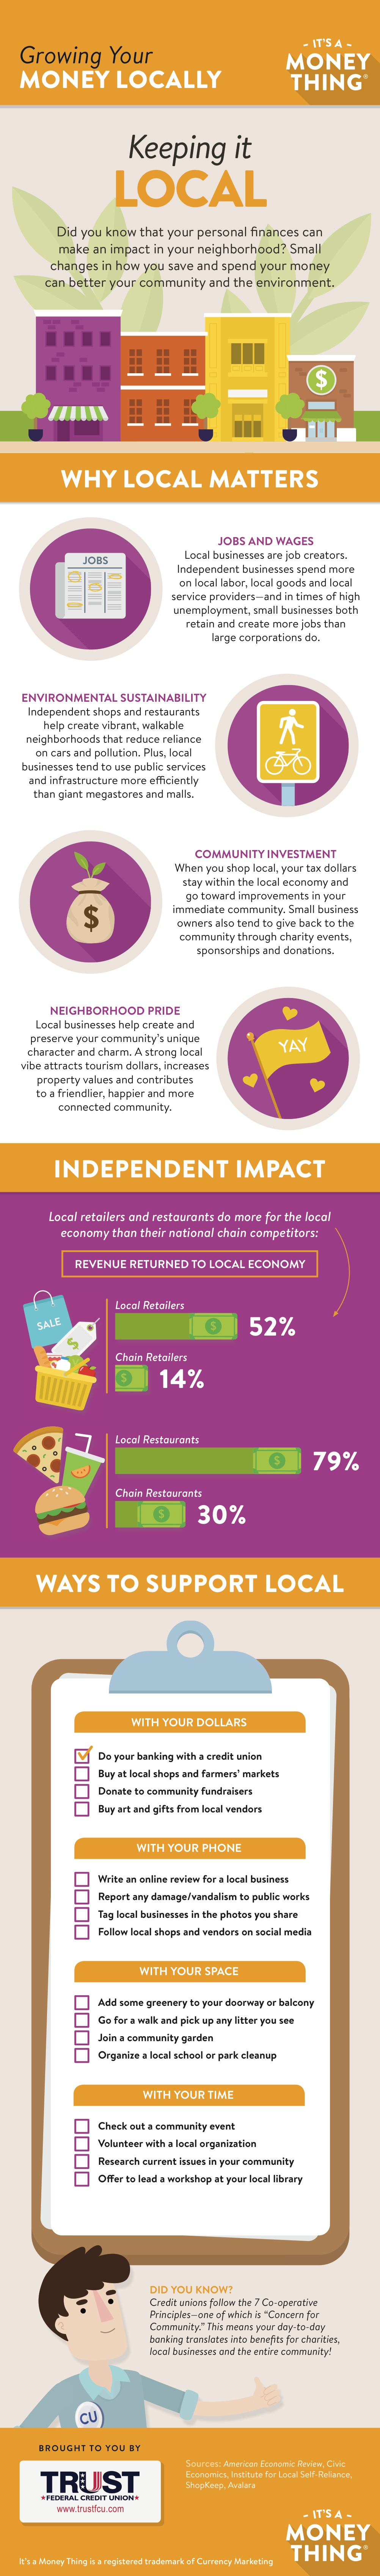 Growing Your Money Locally Info Graphic